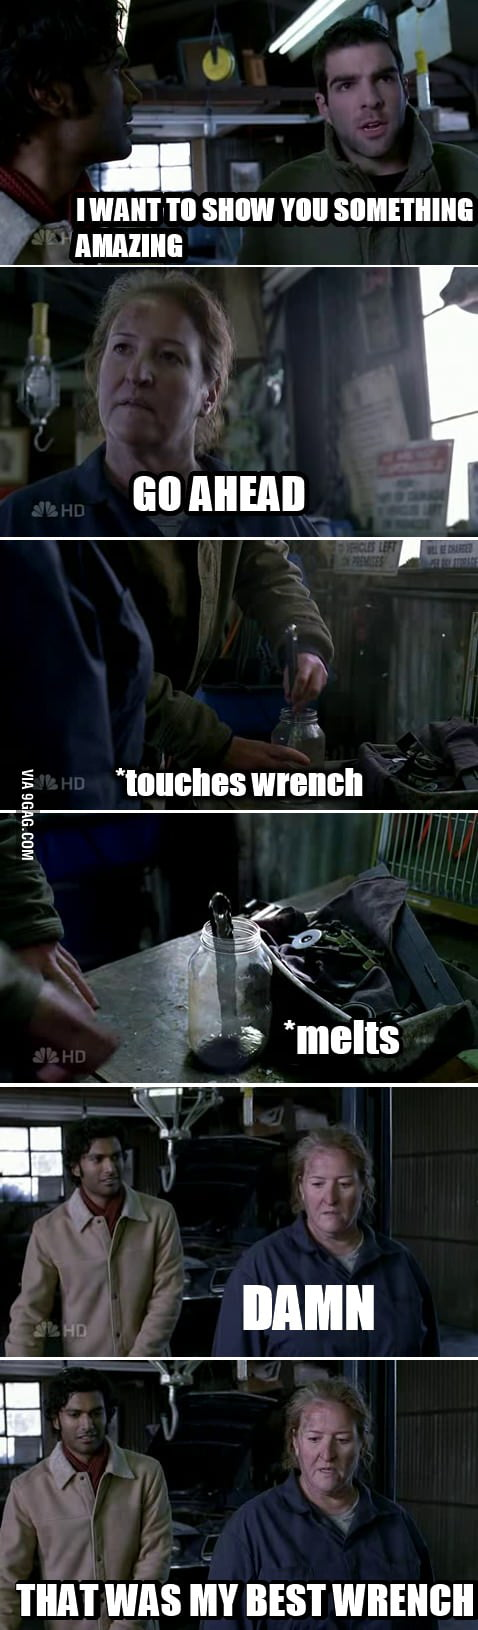 My wrench!